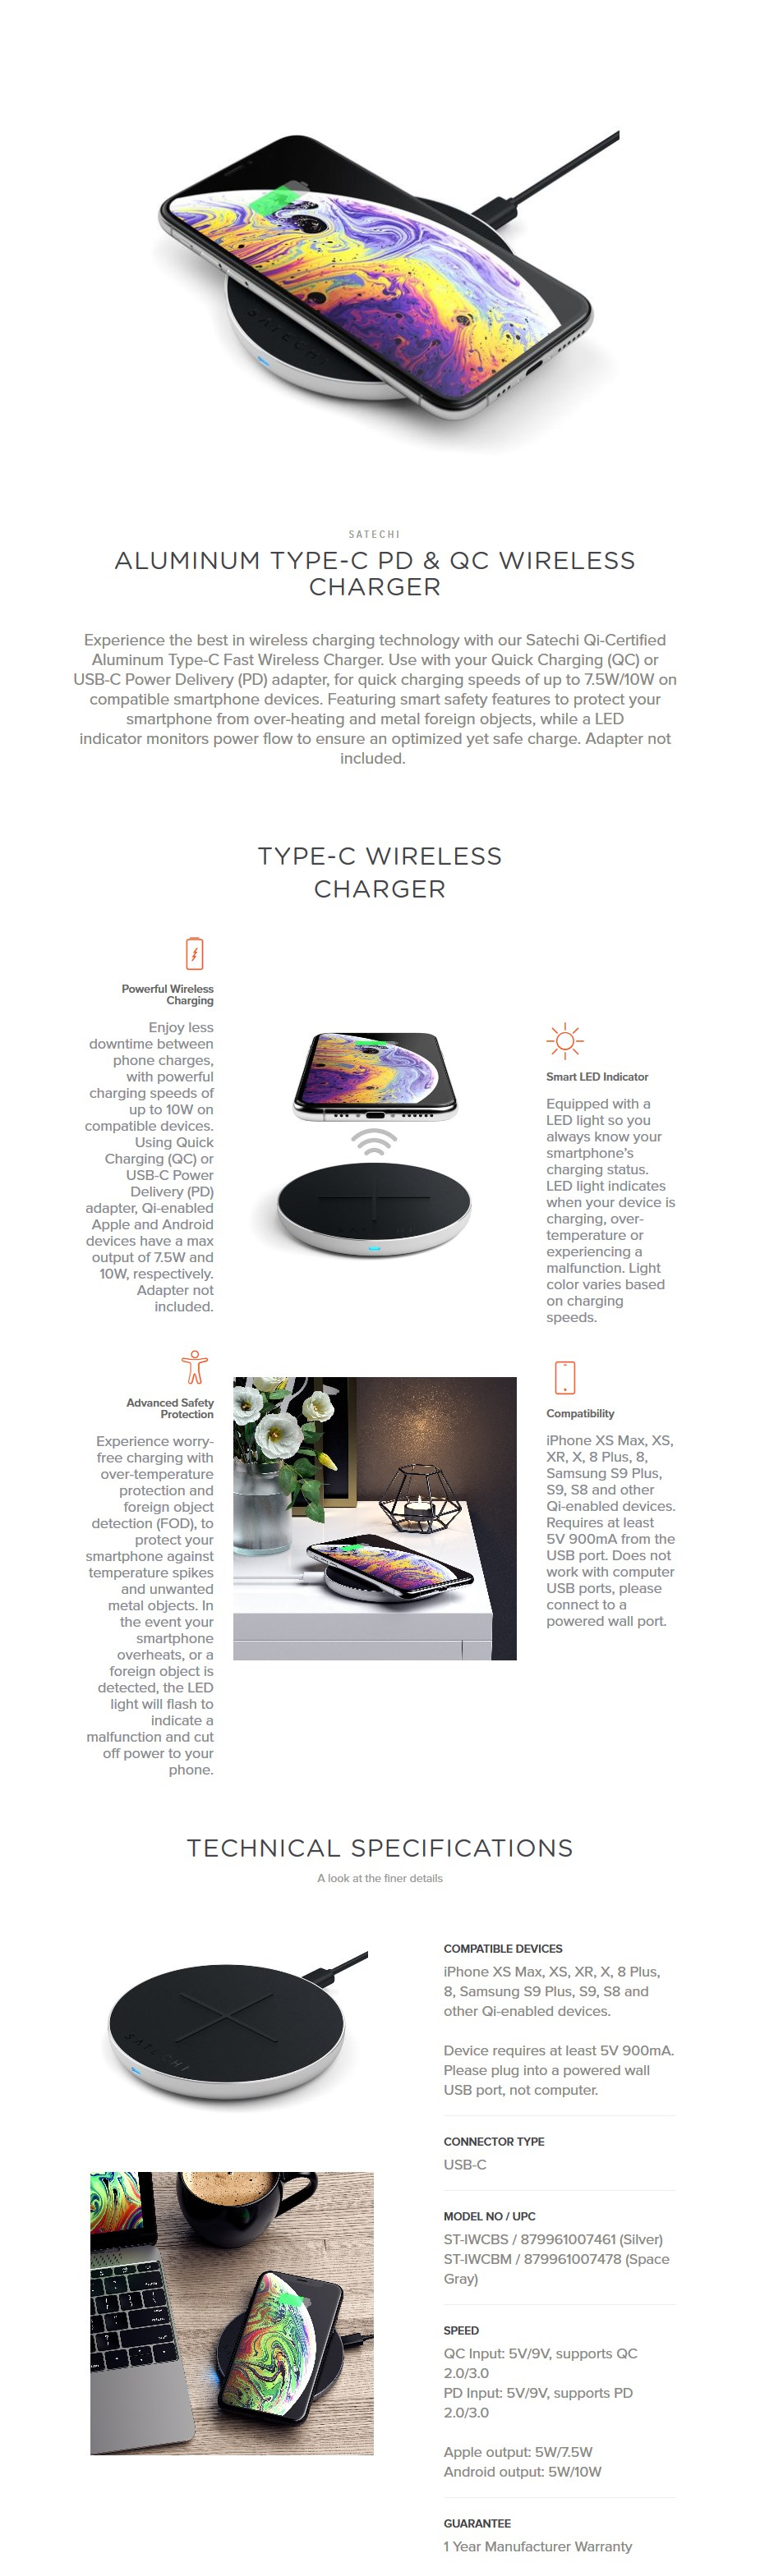 Satechi Aluminum Type C PD & QC Wireless Charger - Silver - Desktop Overview 1